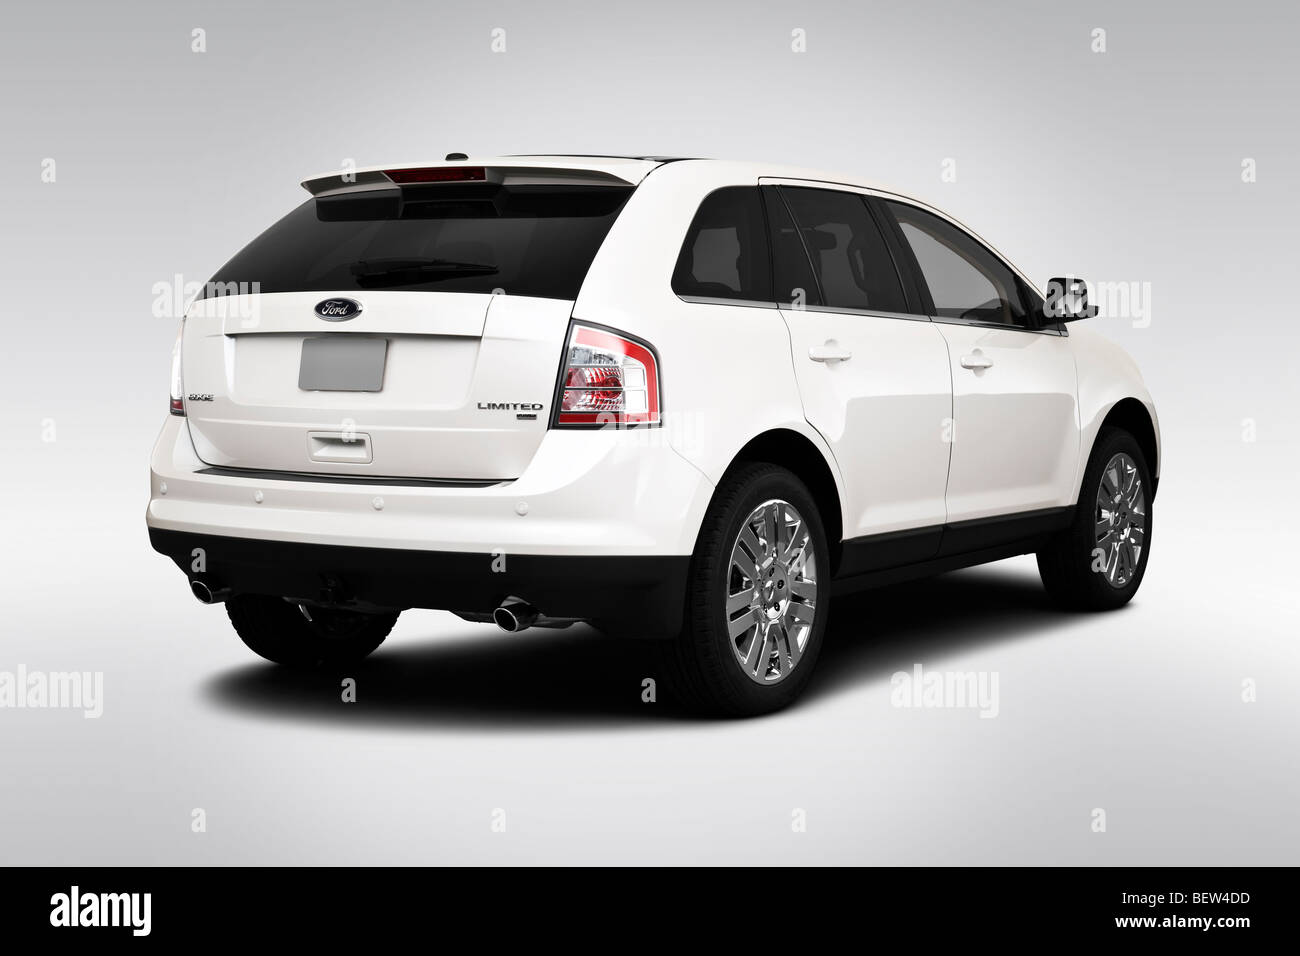 2010 ford edge limited in white rear angle view